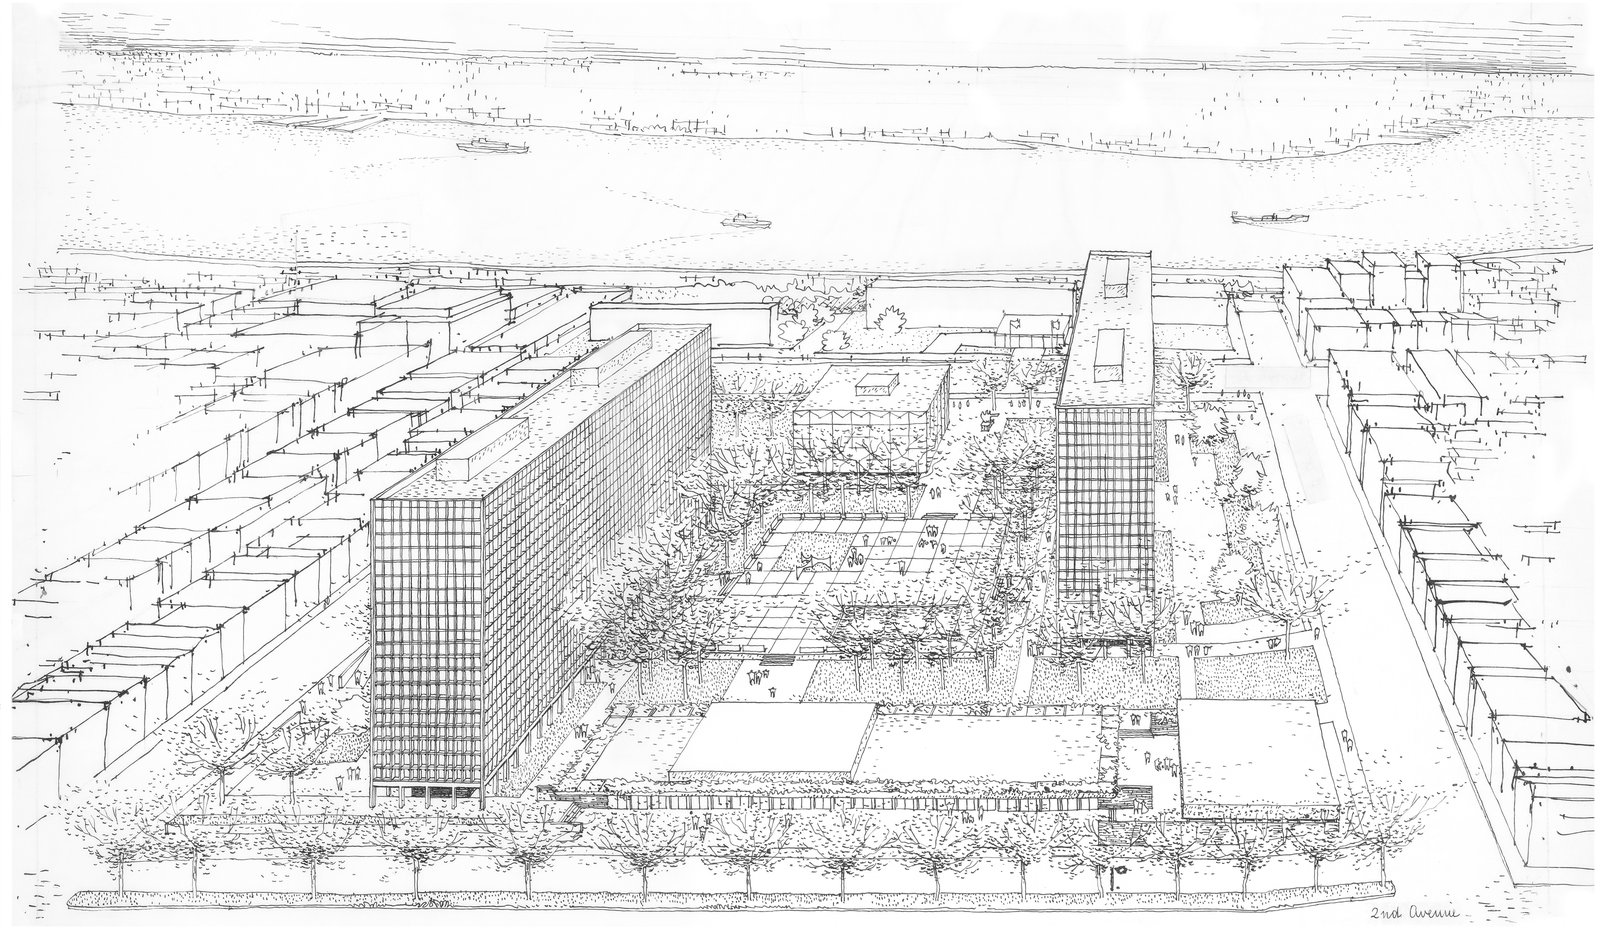 Architectural drawing of Kips Bay Plaza (Pei Cobb Freed & Partners)